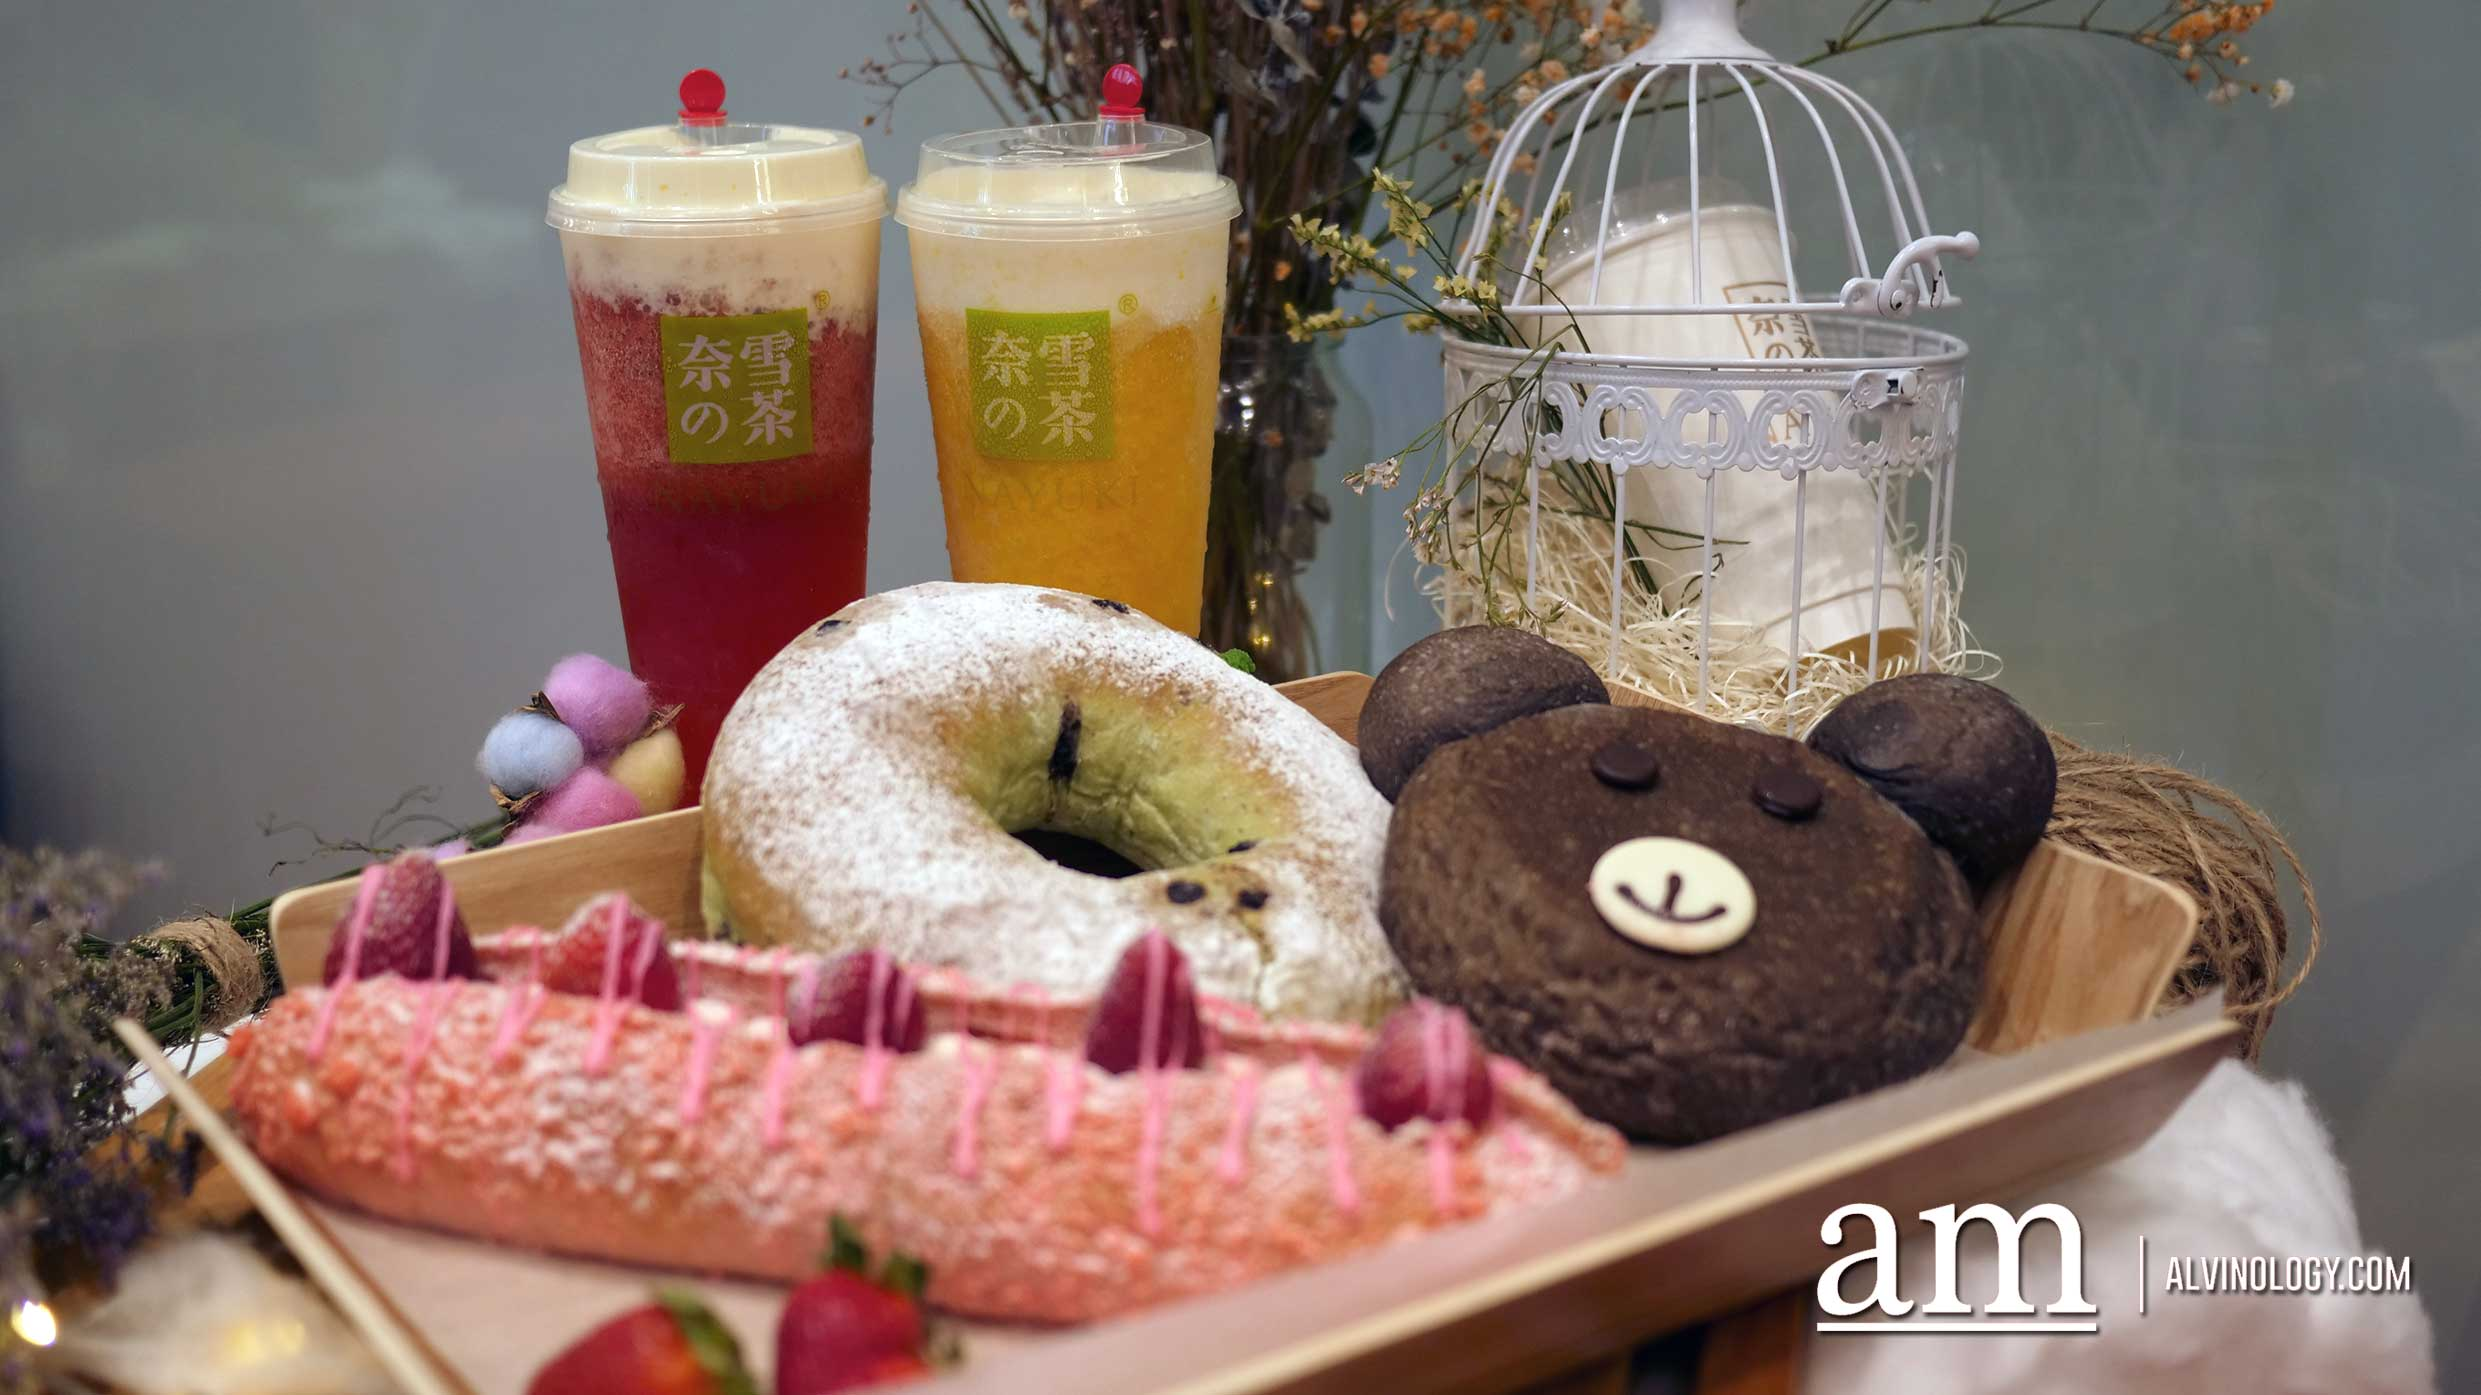 Store Preview - Cheese Tea Bakery Nayuki (奈雪の茶) to open on 8 Dec with 1-for-1 Promotion - Alvinology